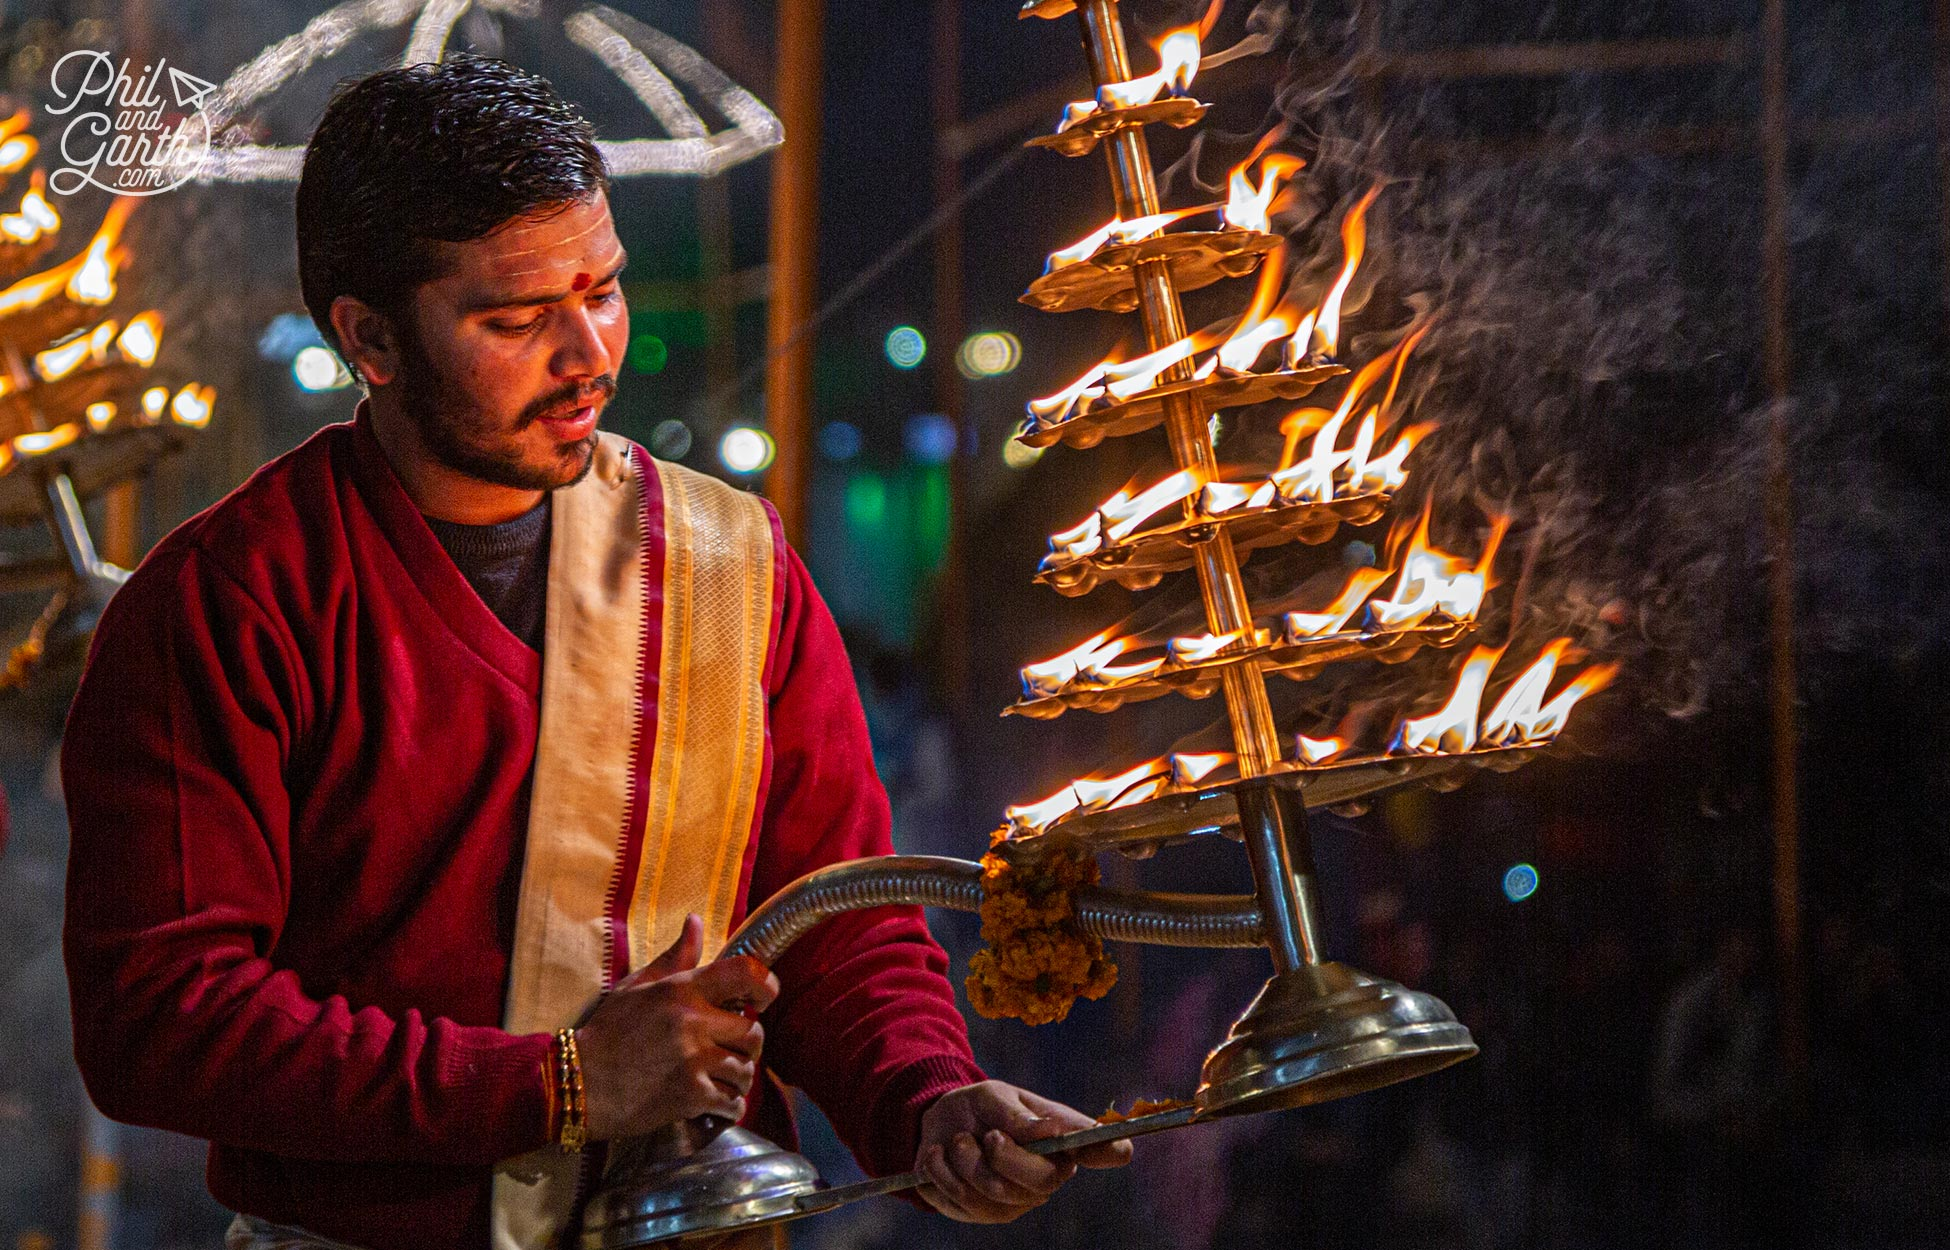 The prayers ceremony uses the light from deepas - big brass oil lamps